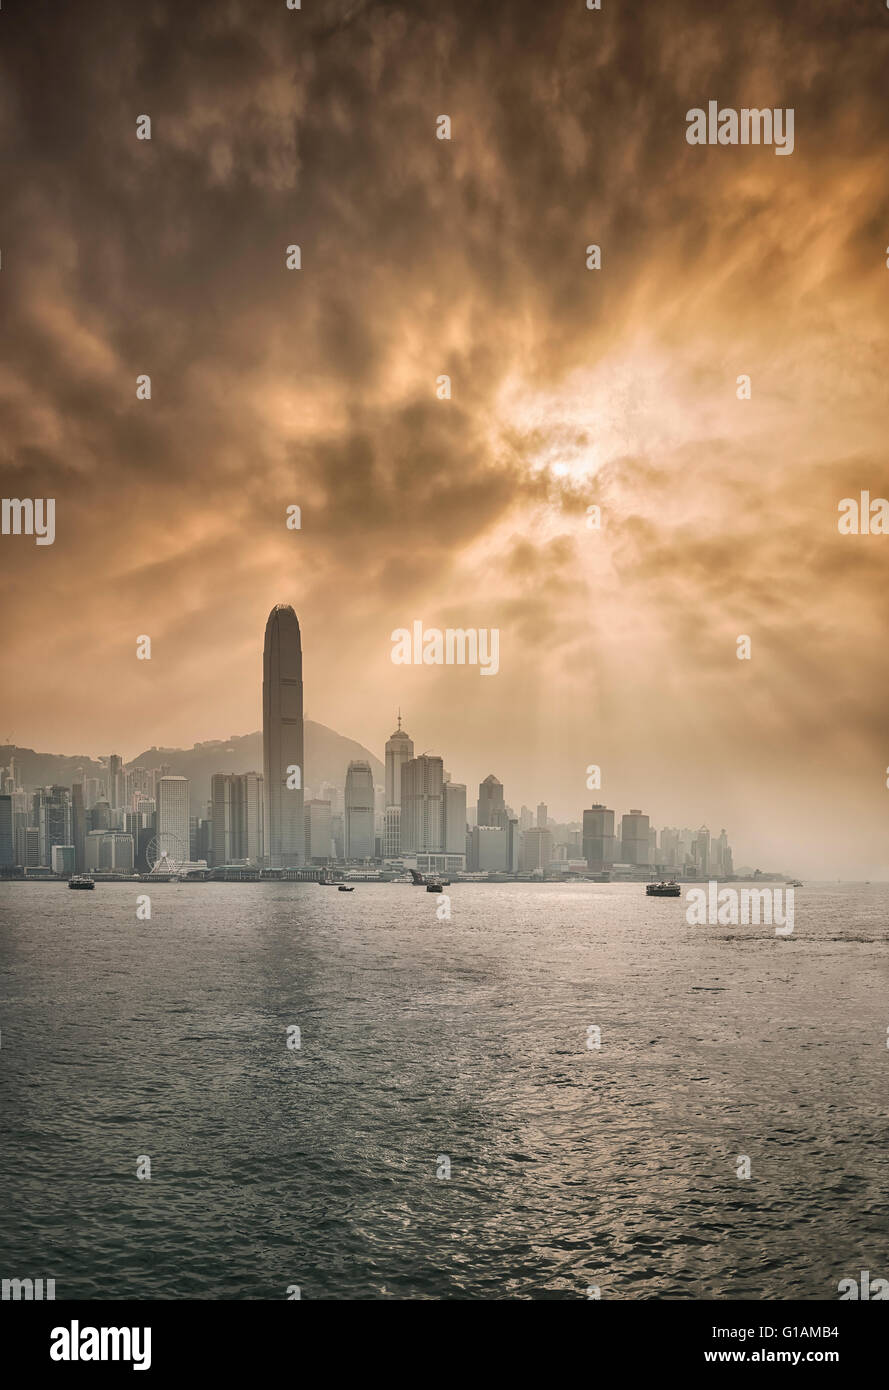 Skyline of Central, Hong Kong Island and Victoria Harbour with sun shining behind dramatic clouds, Hong Kong, China, - Stock Image